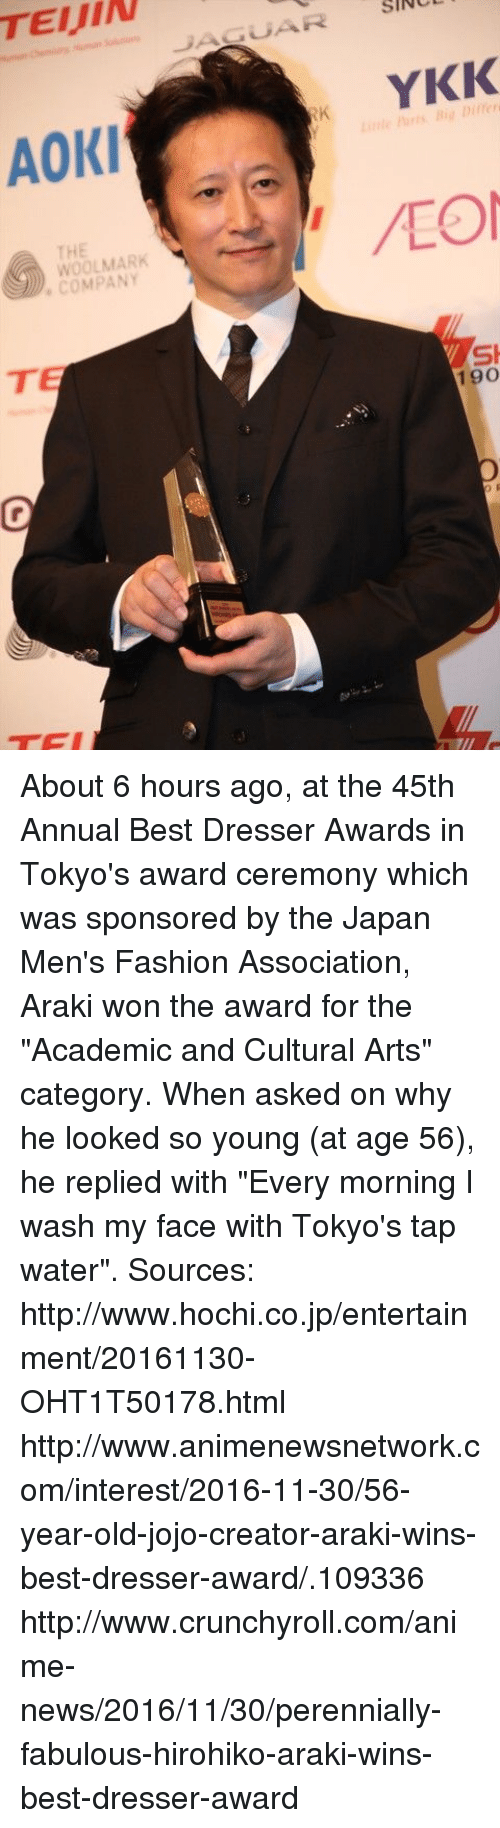 "Crunchyroll, Dank, and Fashion: TEIJIN  JAGUAR srvc  YKK  Aoki  THE  ) WOOLMARK  ·COMPANY  si  TEI  K About 6 hours ago, at the 45th Annual Best Dresser Awards in Tokyo's award ceremony which was sponsored by the Japan Men's Fashion Association, Araki won the award for the ""Academic and Cultural Arts"" category.  When asked on why he looked so young (at age 56), he replied with ""Every morning I wash my face with Tokyo's tap water"".  Sources: http://www.hochi.co.jp/entertainment/20161130-OHT1T50178.html http://www.animenewsnetwork.com/interest/2016-11-30/56-year-old-jojo-creator-araki-wins-best-dresser-award/.109336 http://www.crunchyroll.com/anime-news/2016/11/30/perennially-fabulous-hirohiko-araki-wins-best-dresser-award"